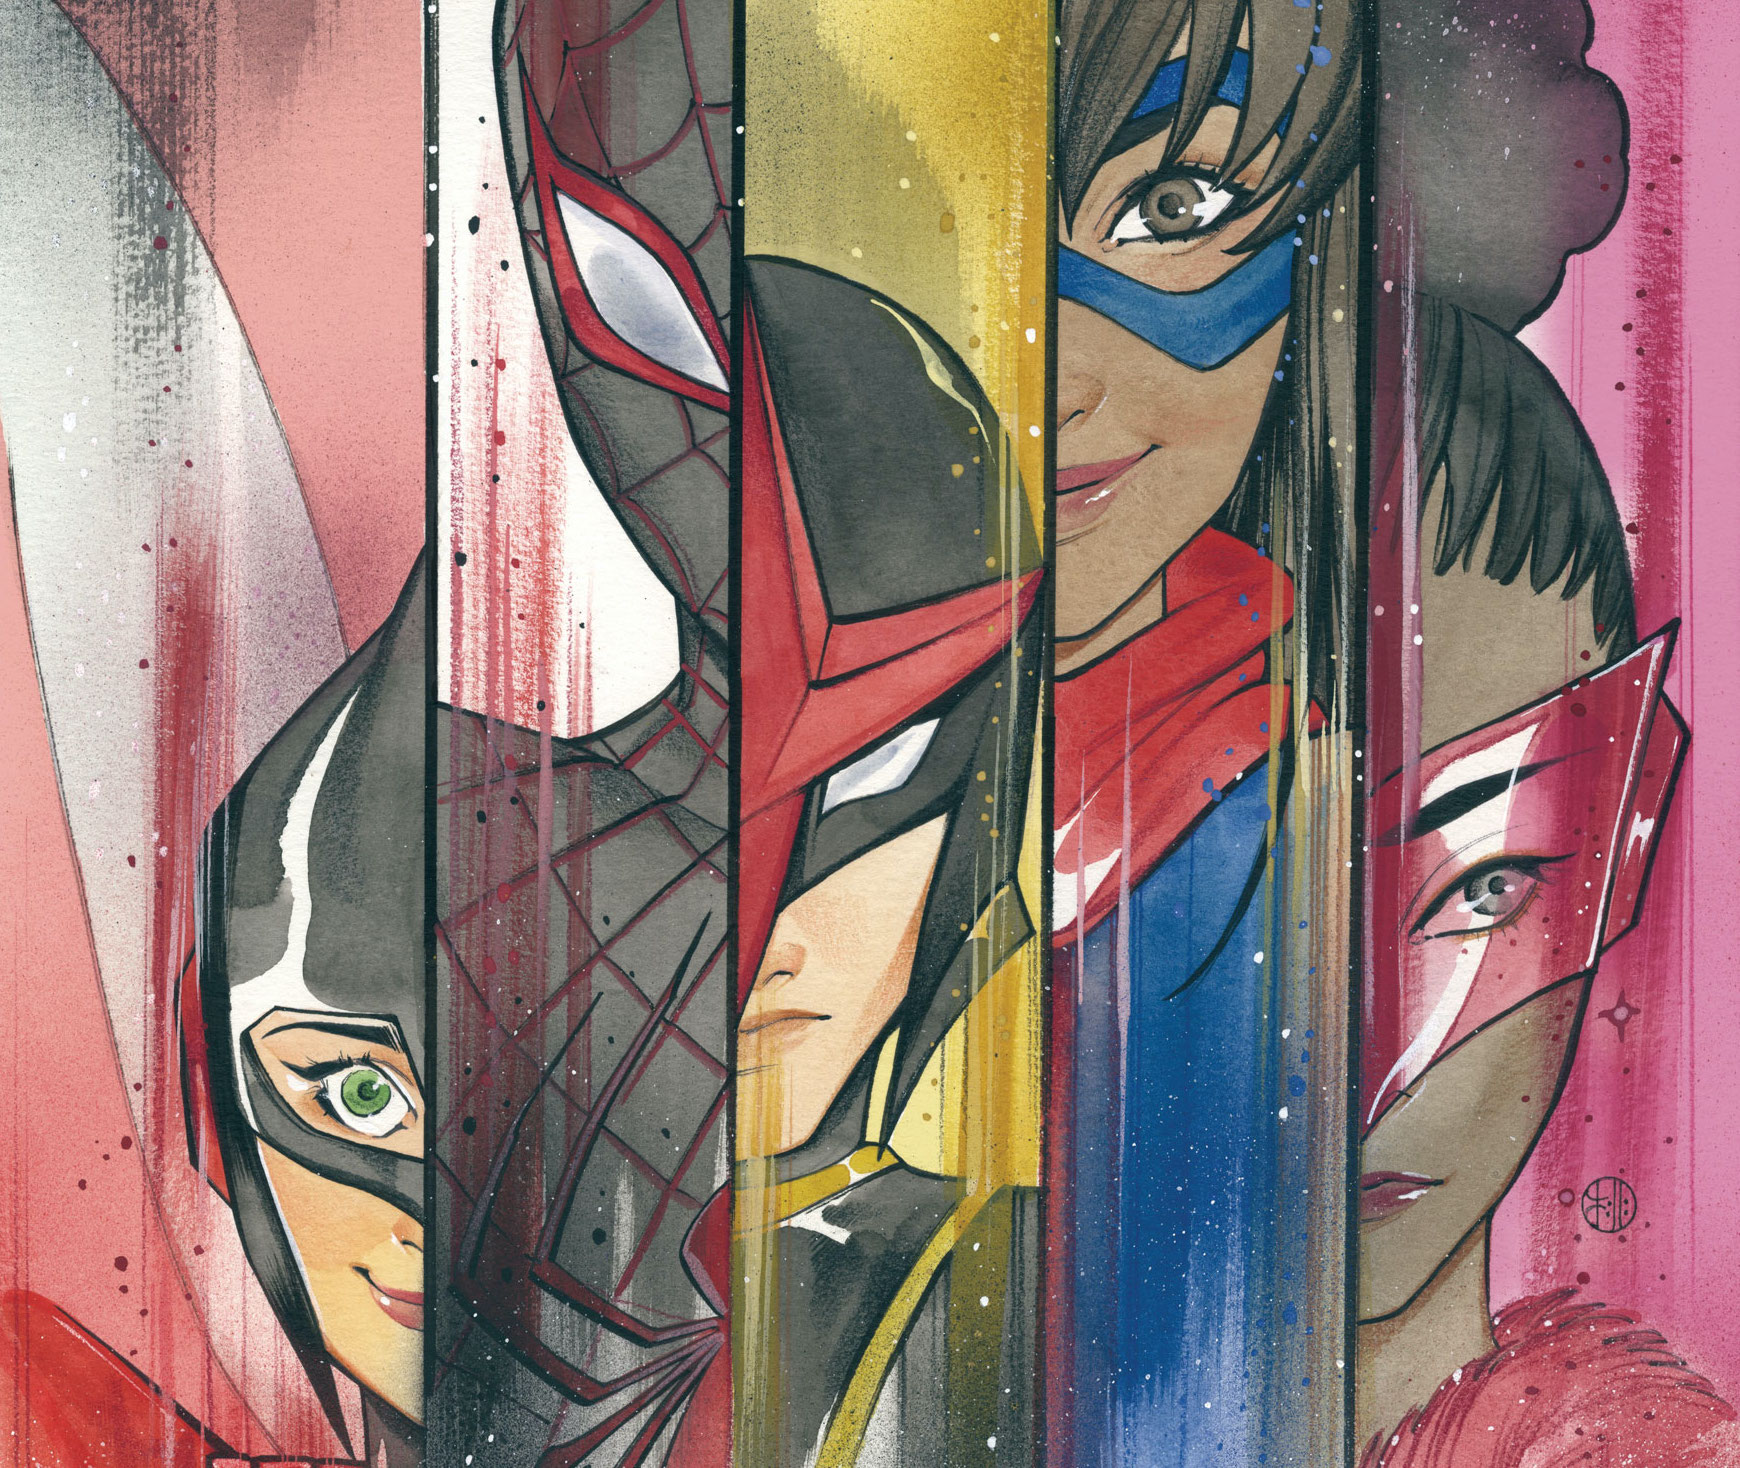 Marvel First Look: Champions #1 variant by Peach Momoko